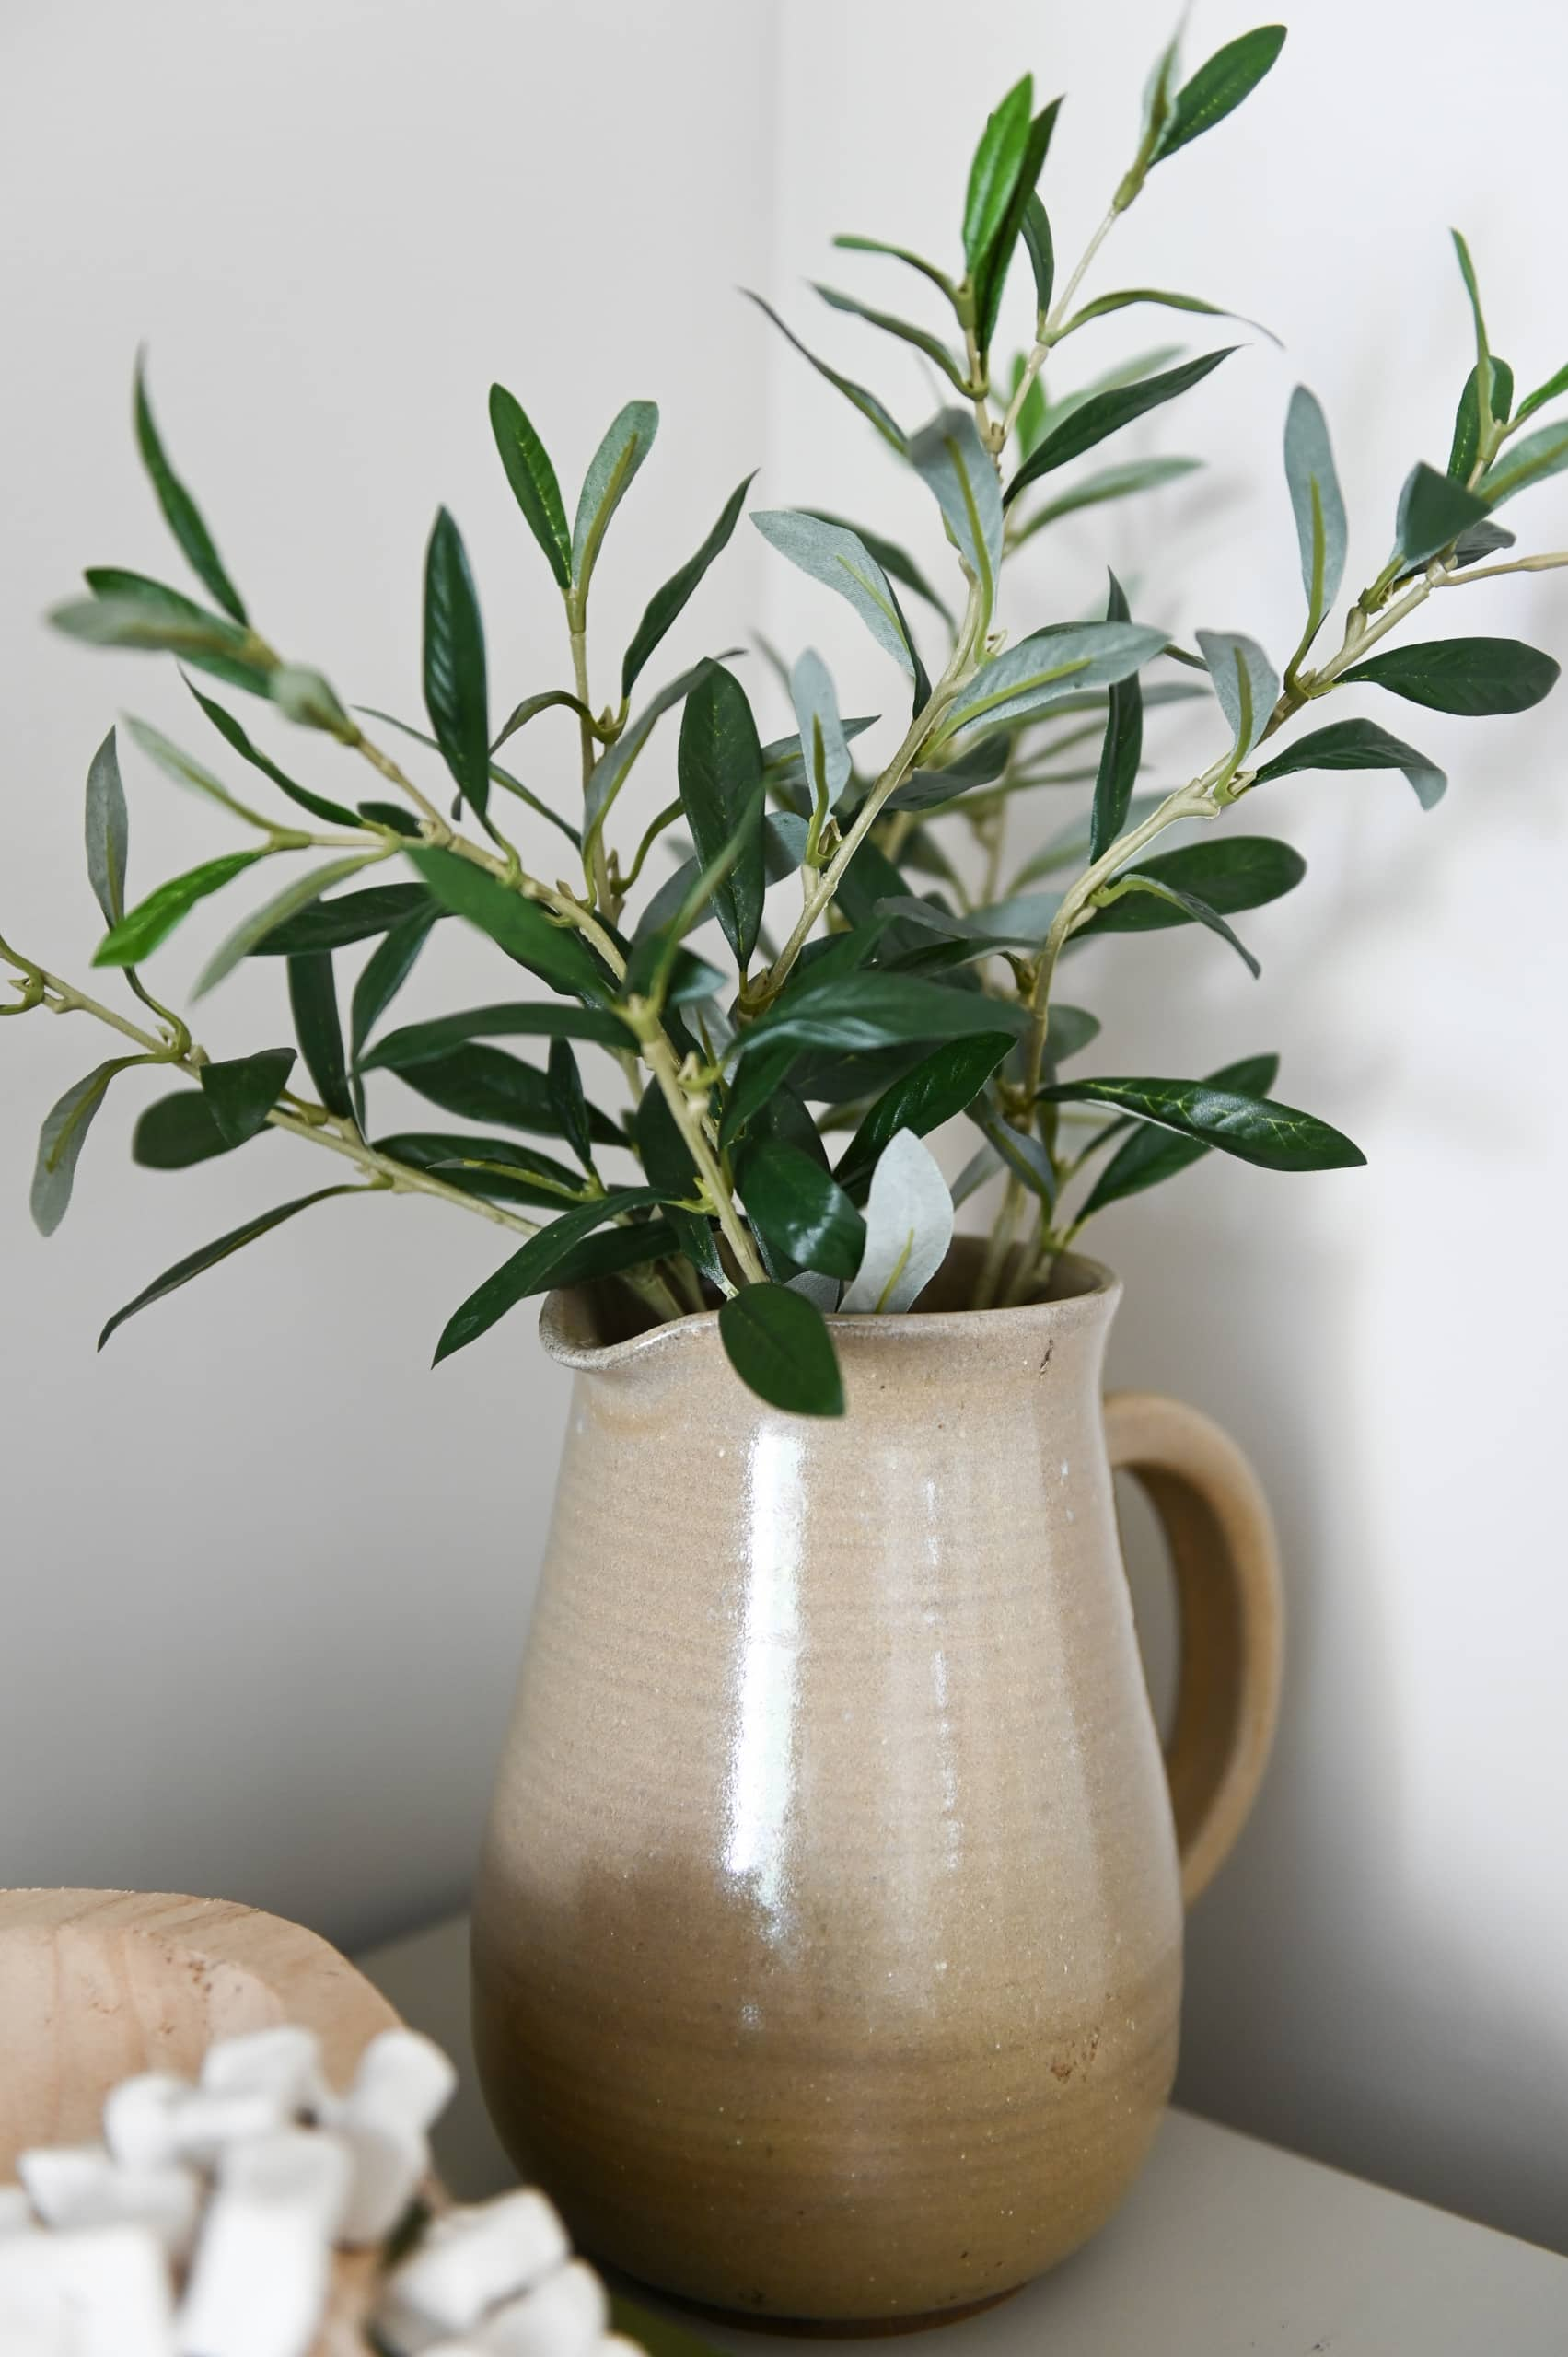 green plants in a vase